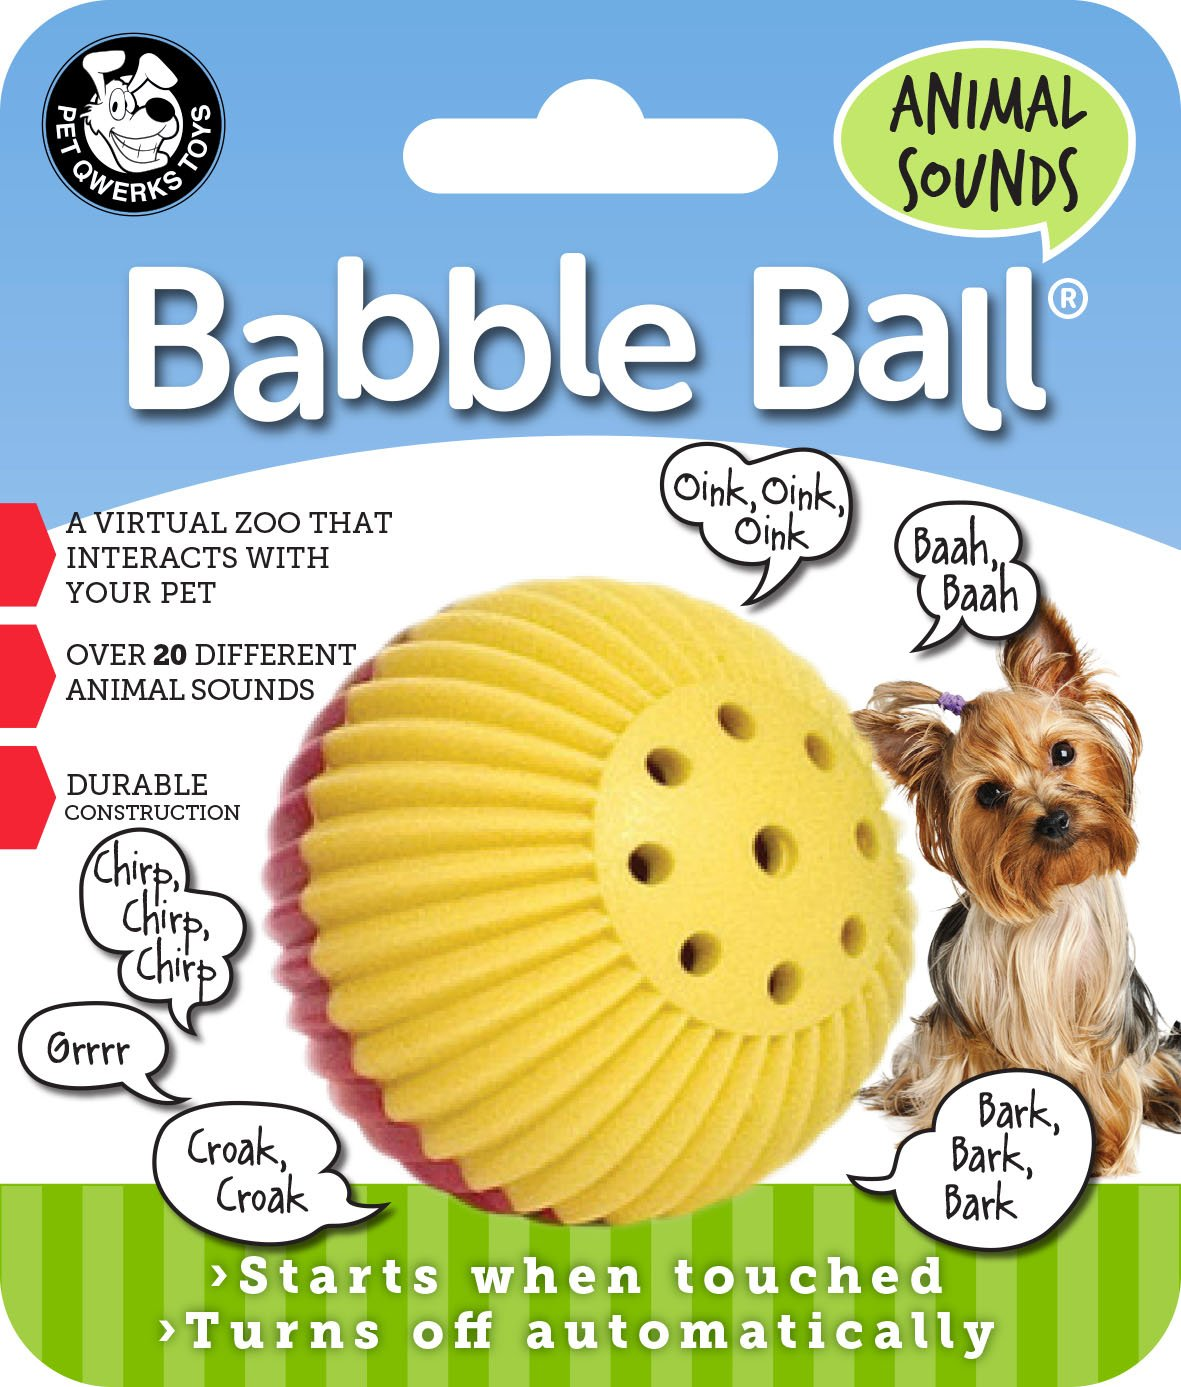 Pet Qwerks – Balle Babble Ball bruitage d'animaux ABB3